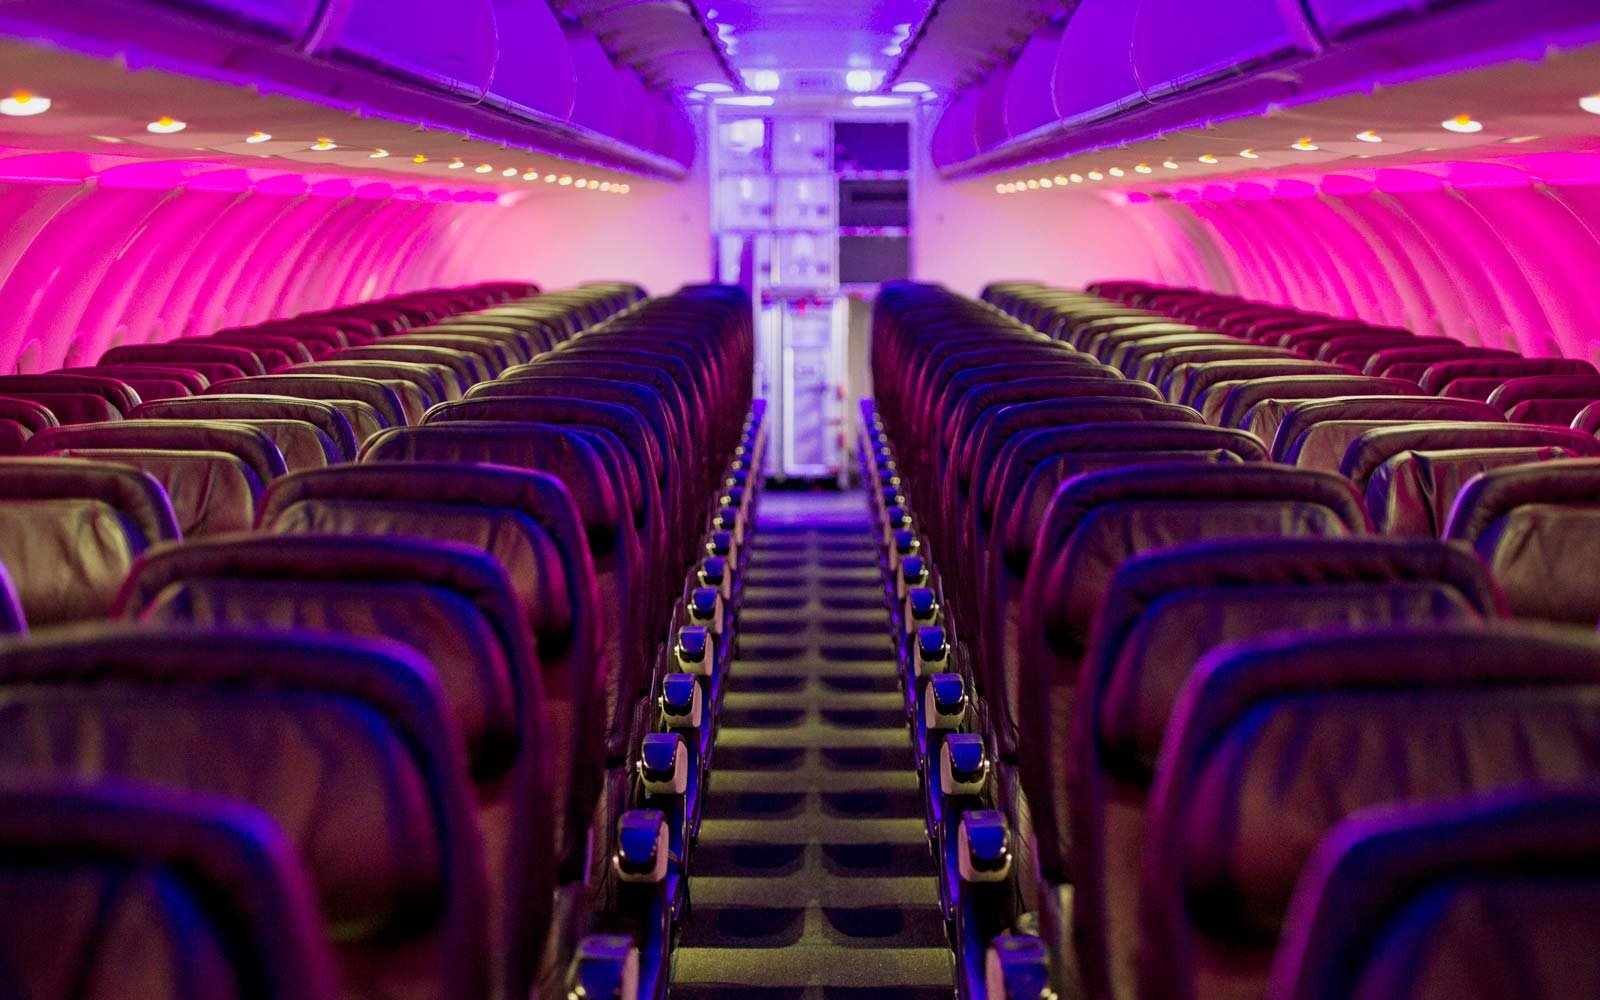 Interior of a Virgin Atlantic plane